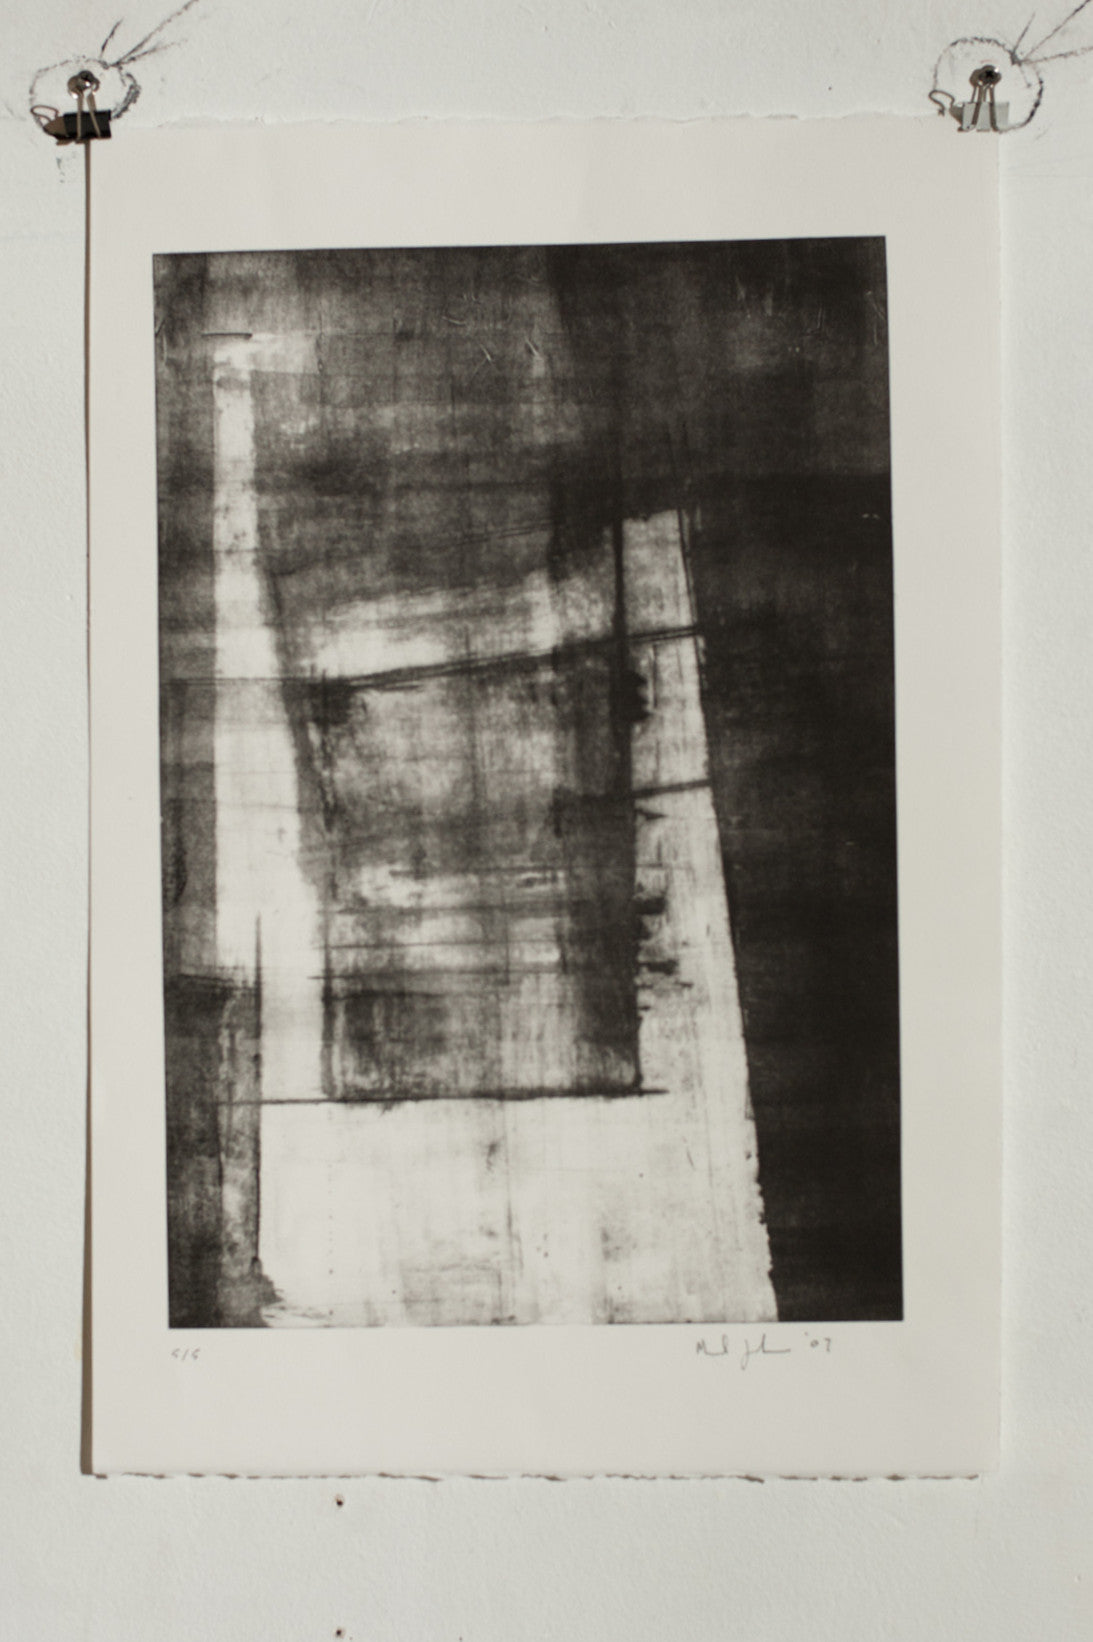 Manuel Zeitlen - Untitled 4 - Lithograph Print on Archival Paper